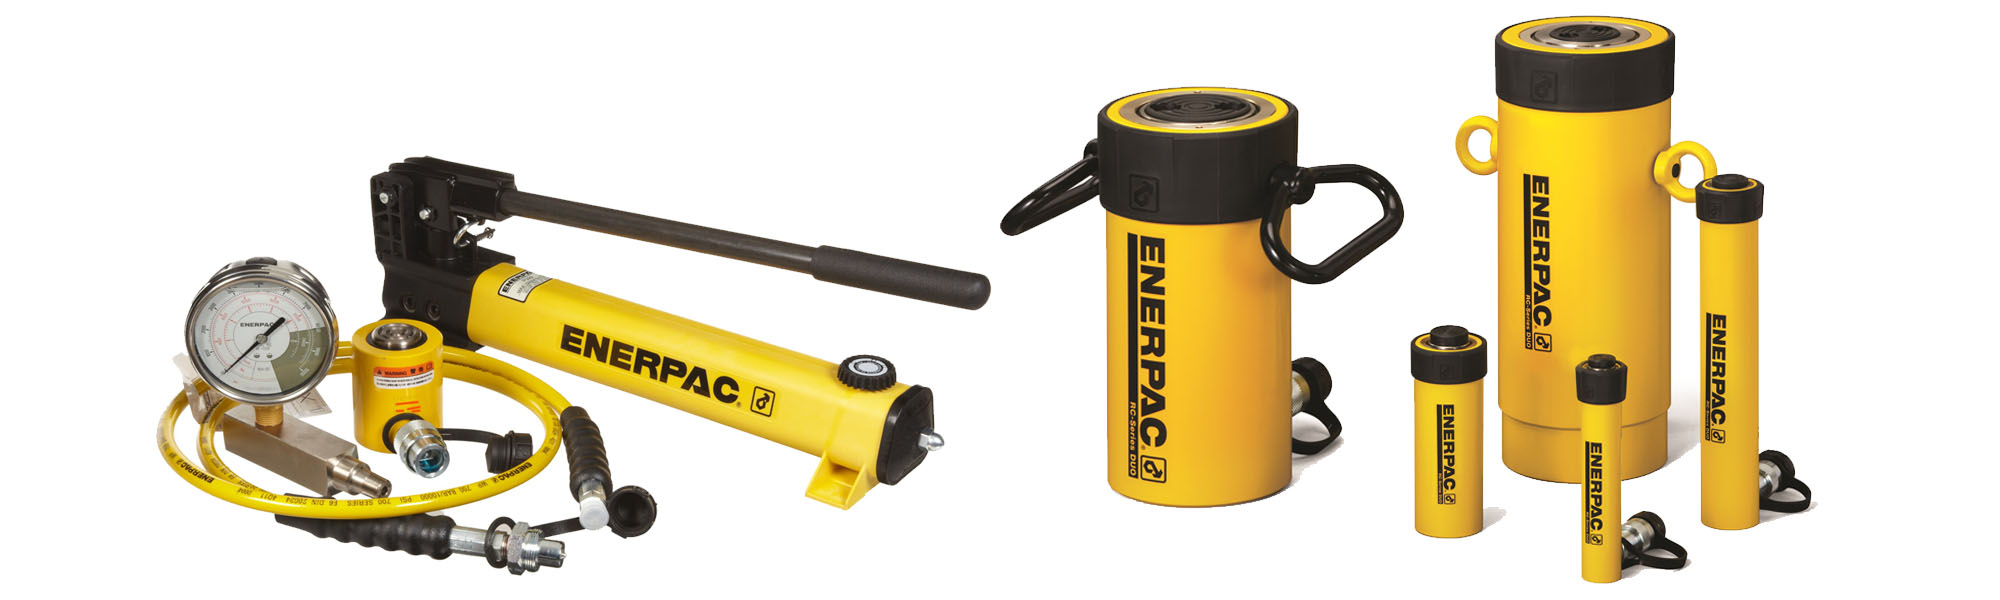 Enerpac Authorised Dealers